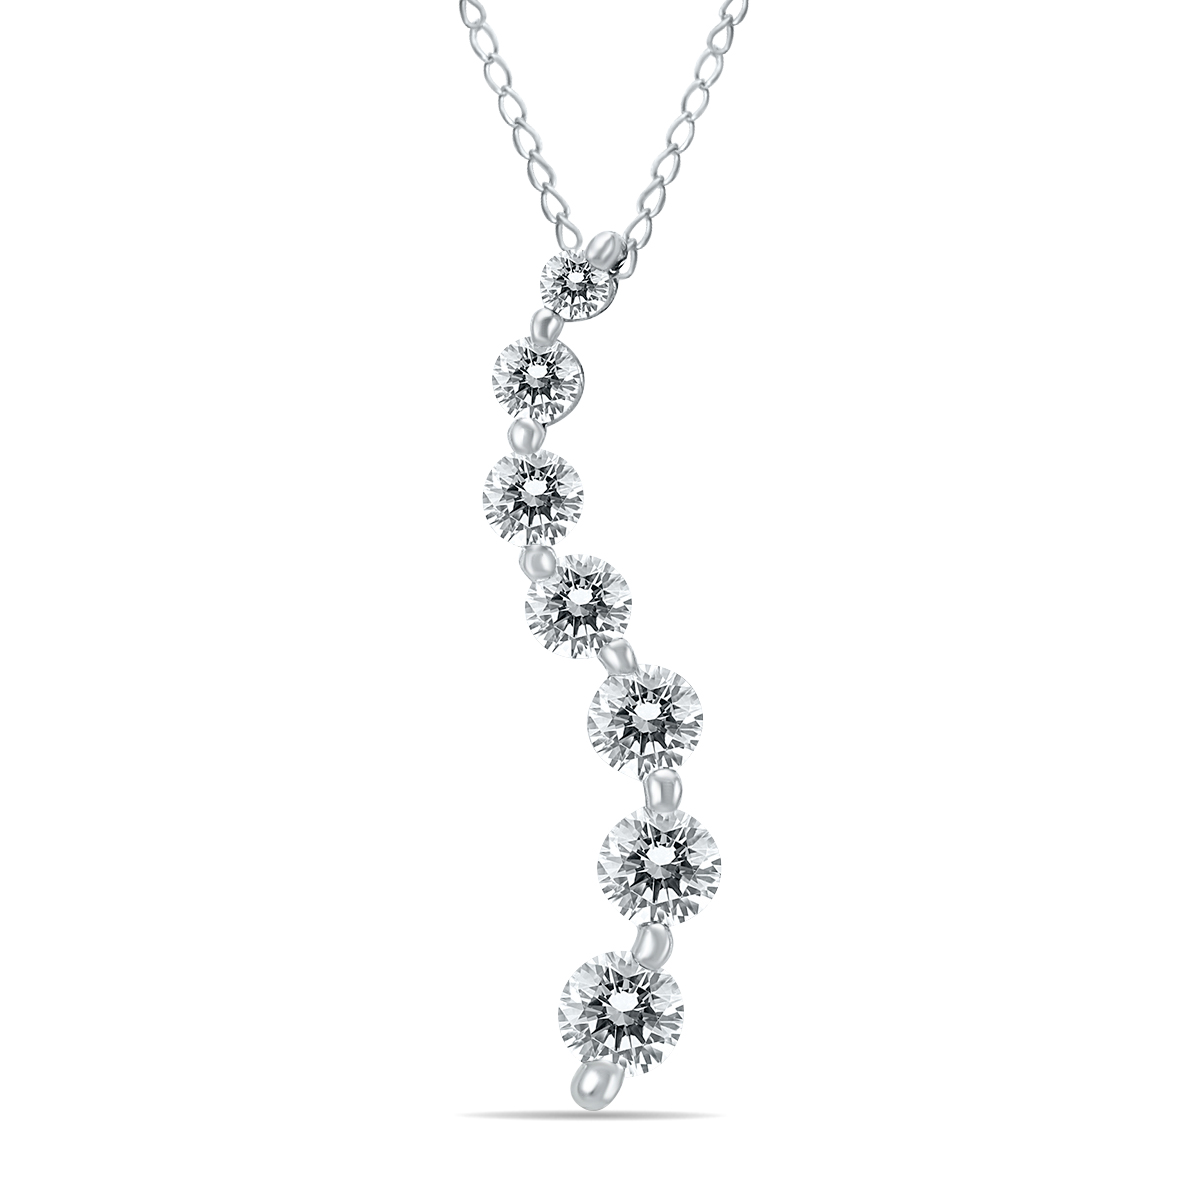 szul.com 1/2 Carat Diamond Journey Pendant in 10K White Gold at Sears.com